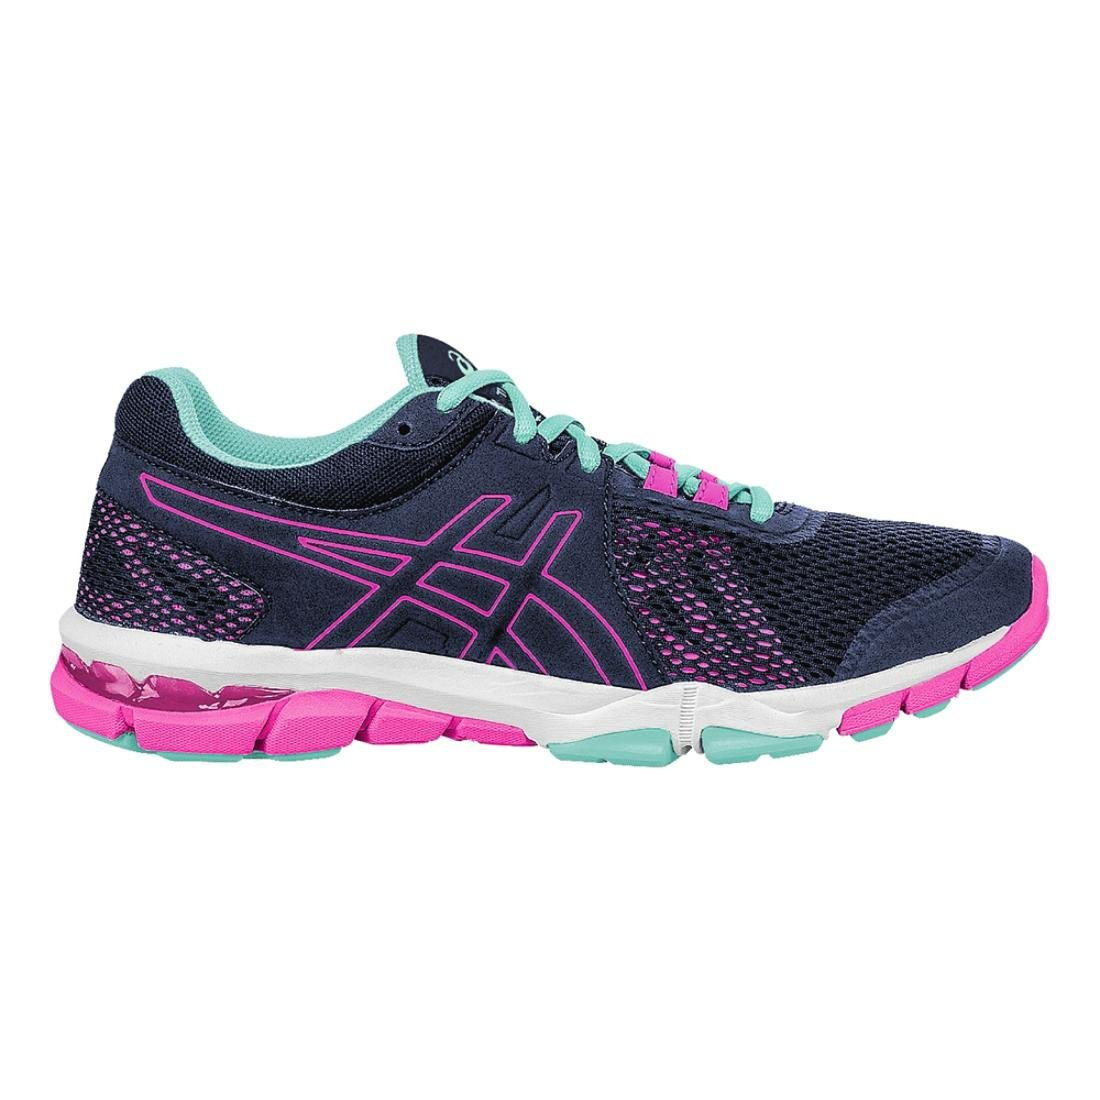 ASICS Women's Gel-Craze TR 4 Cross-Trainer Shoe B075FCXTYM 7.5 D(M) US|Indigo Blue/Indigo Blue/Hot Pink